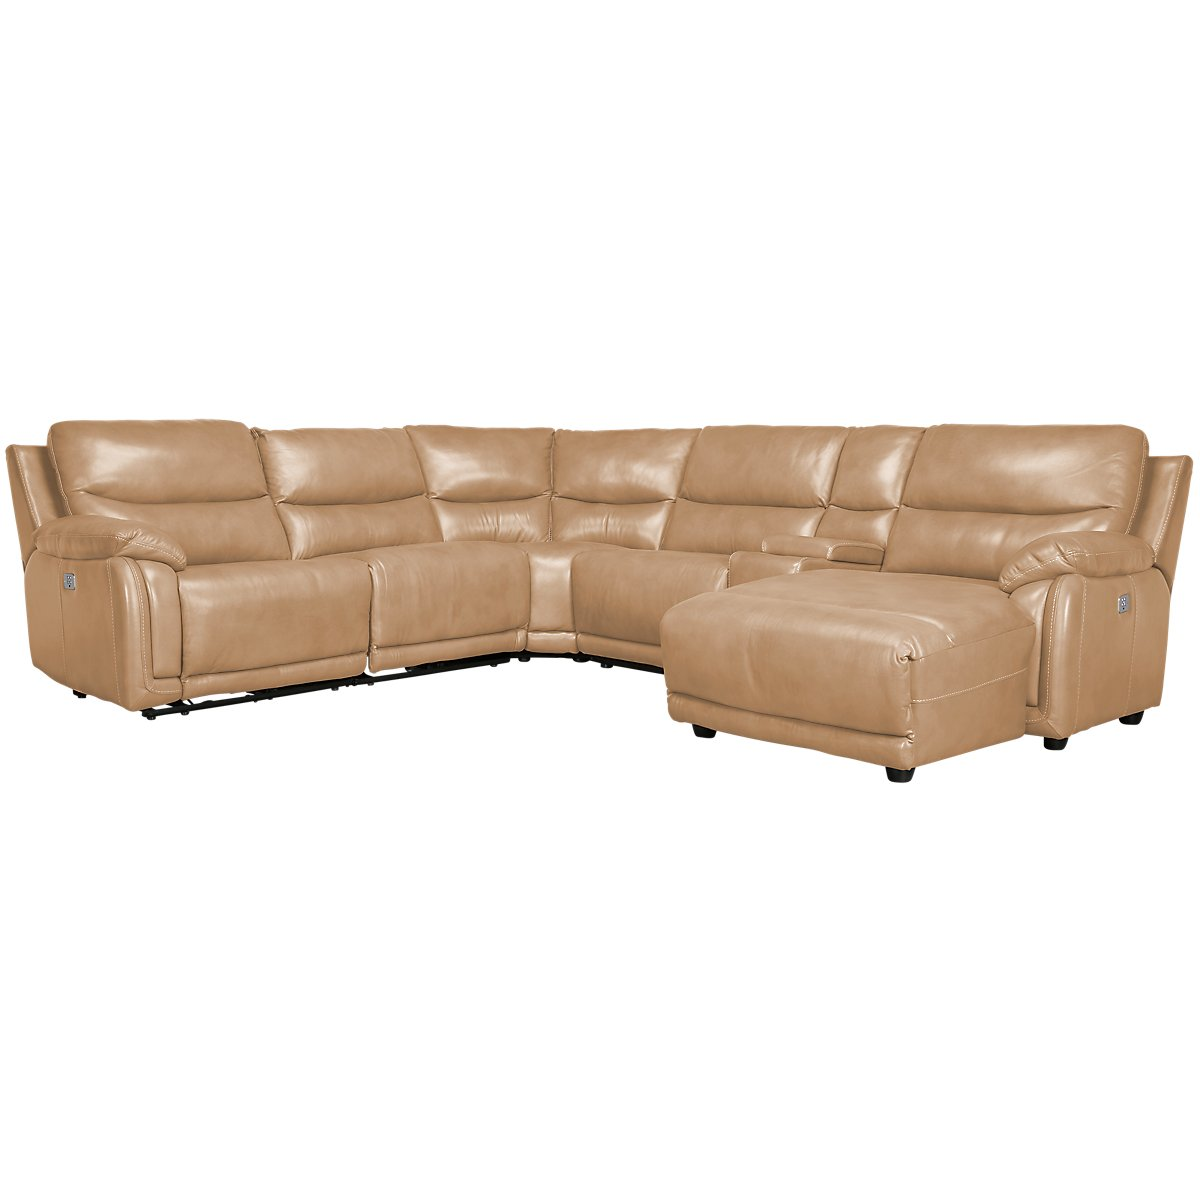 City furniture vince taupe leather right chaise power - Leather reclining sectional with chaise ...